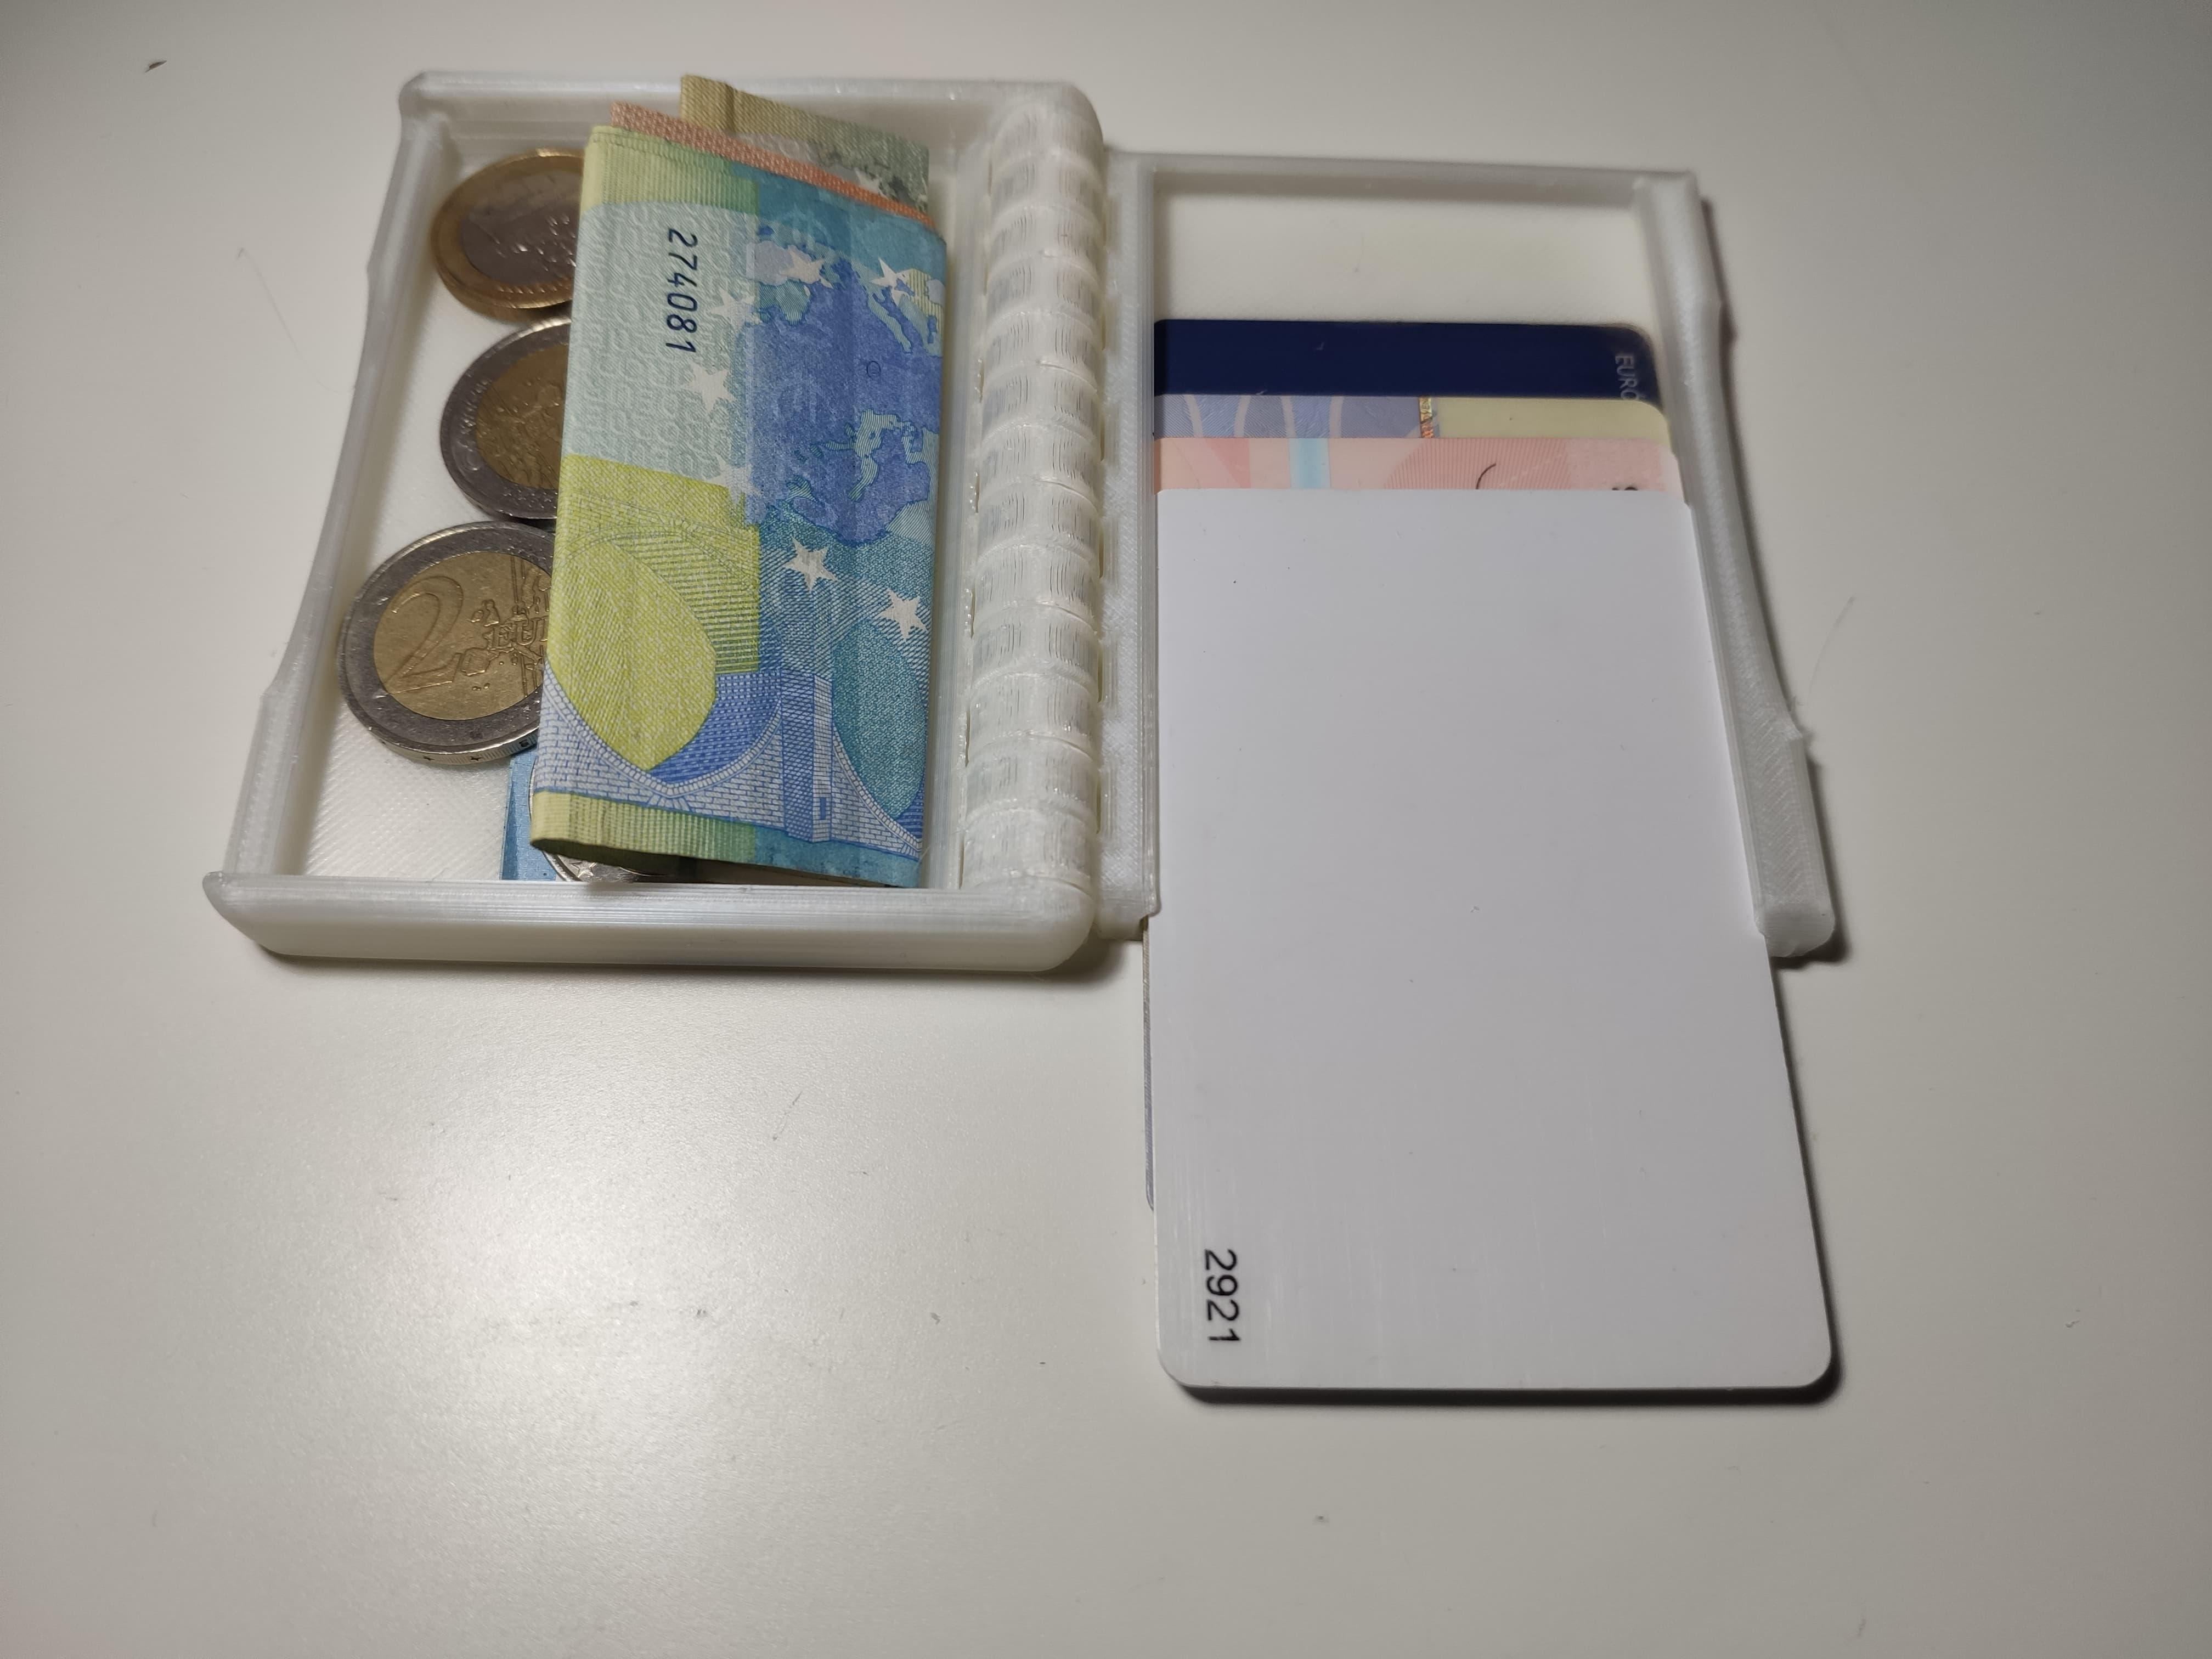 Cassete Wallet 12mm - Fixed geometry, no holes, no side design